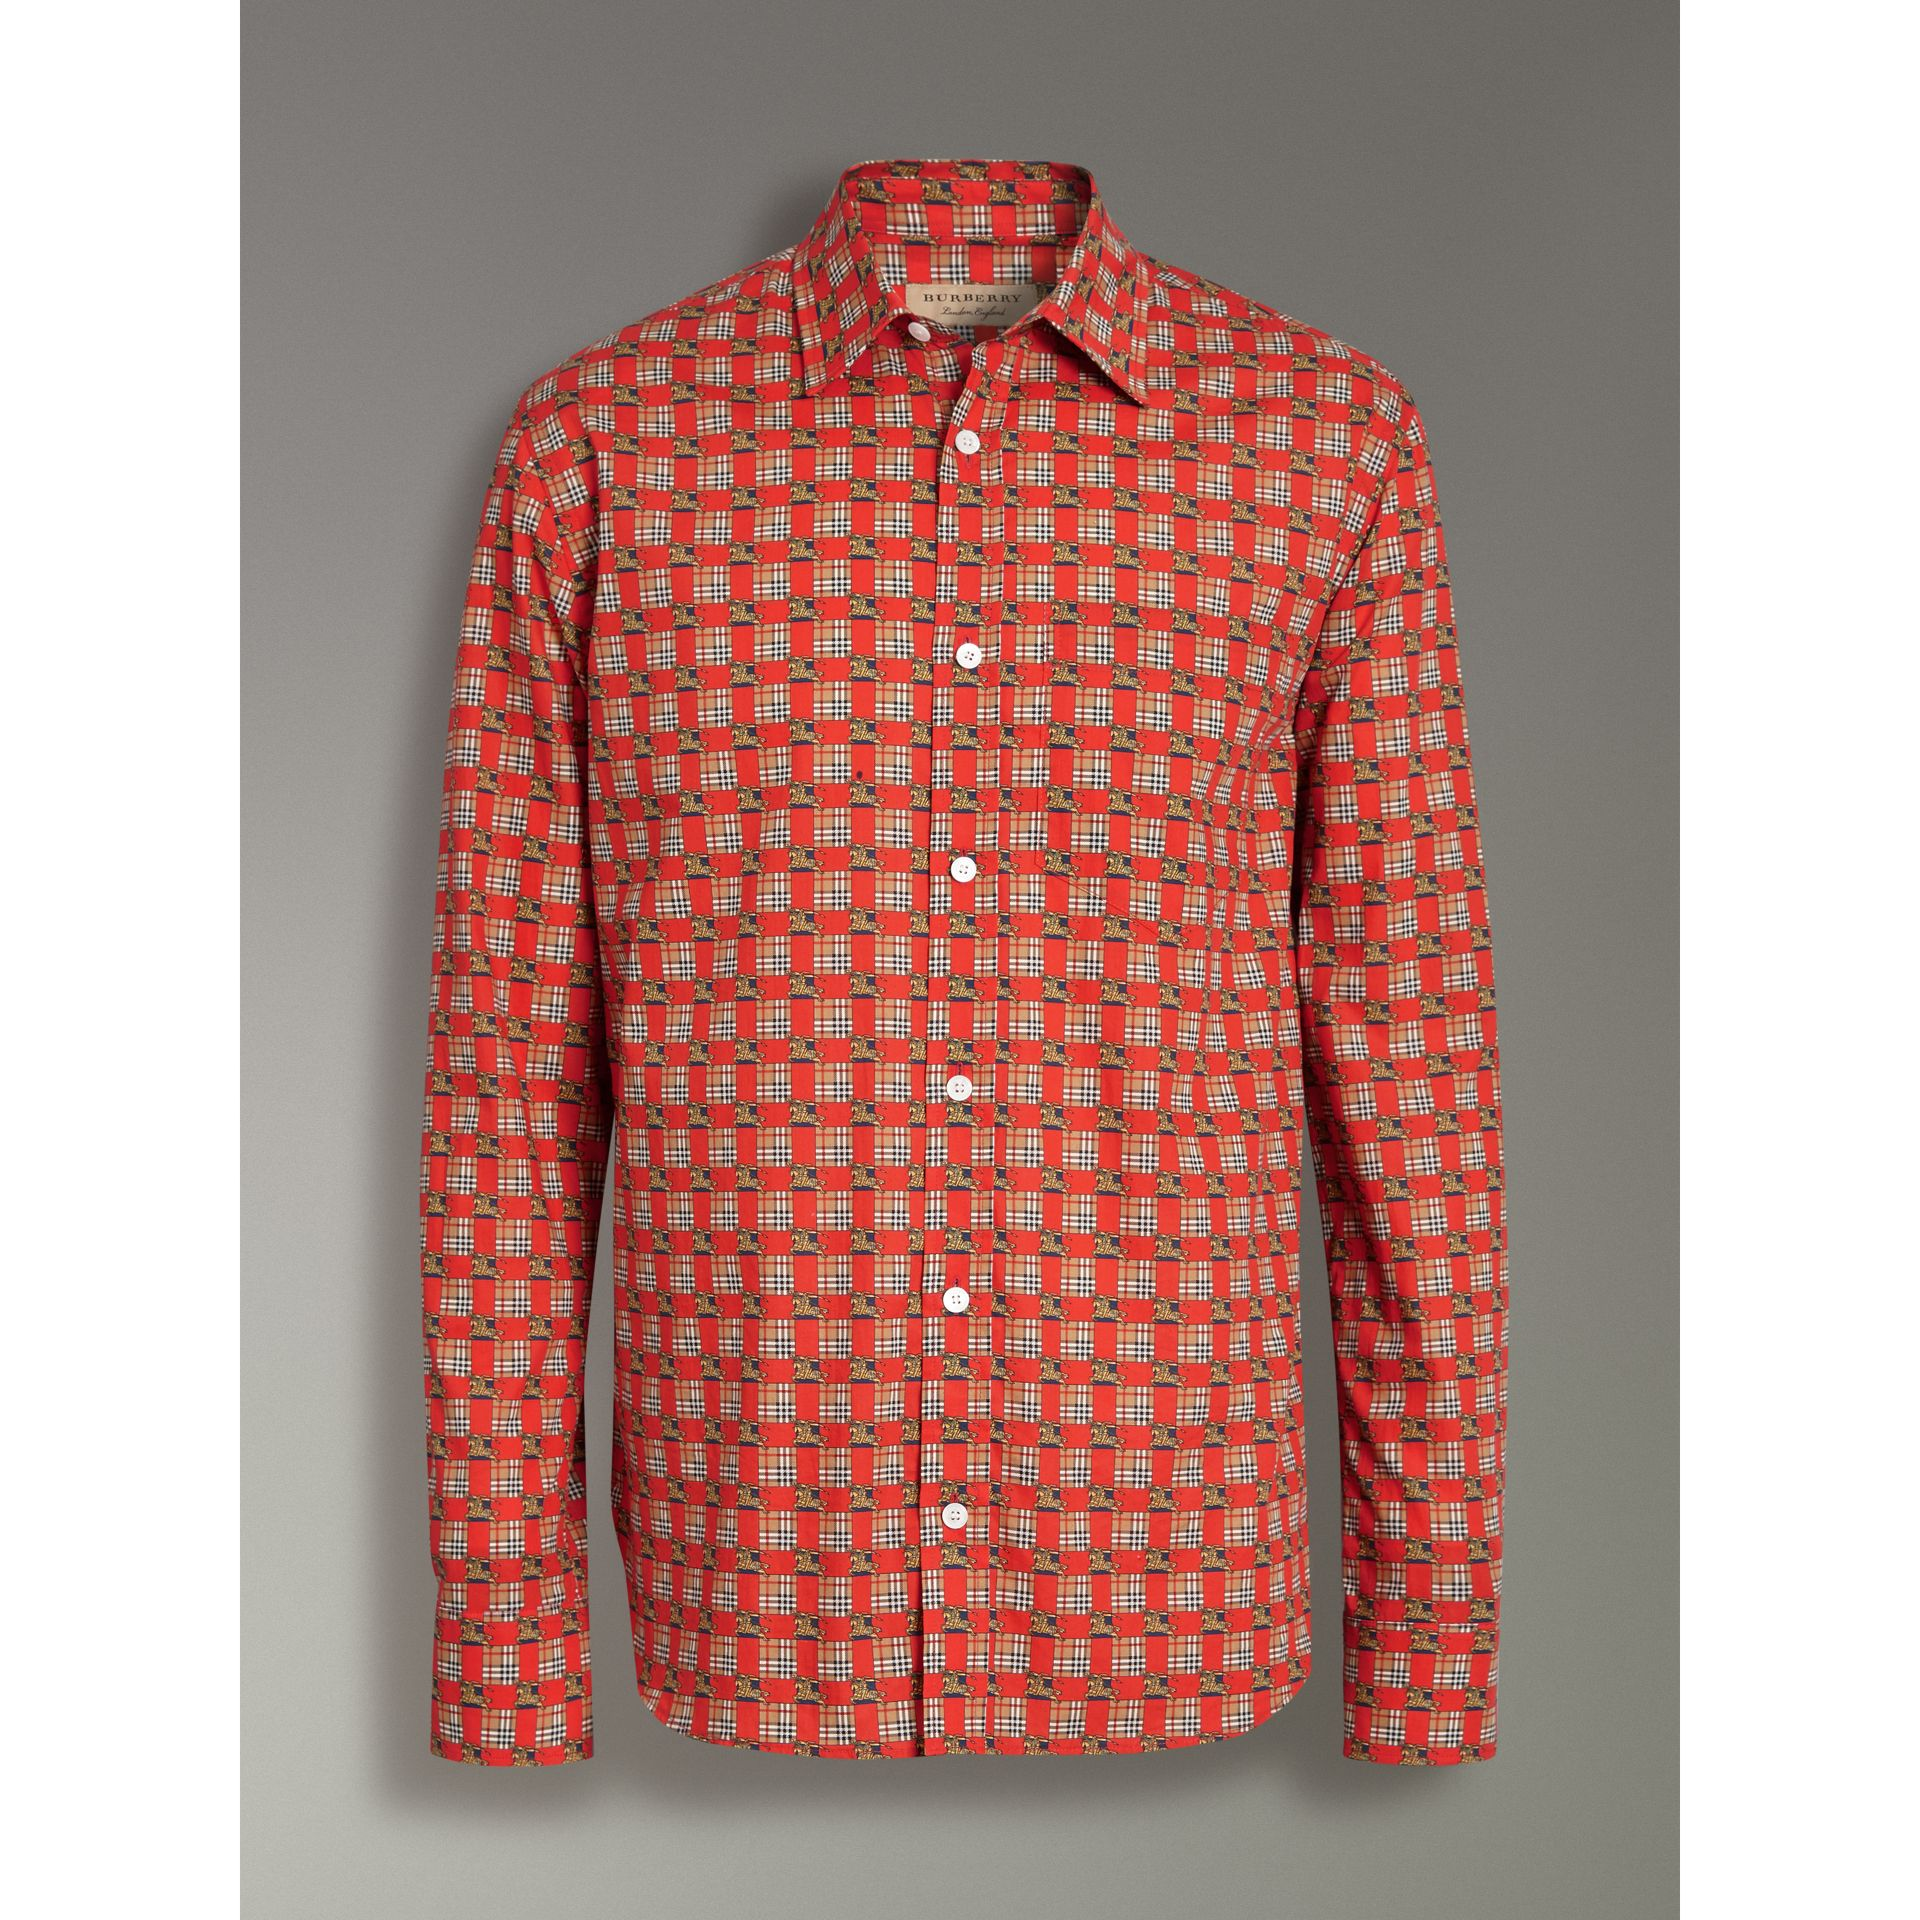 Tiled Archive Print Cotton Shirt in Bright Red - Men | Burberry United Kingdom - gallery image 3